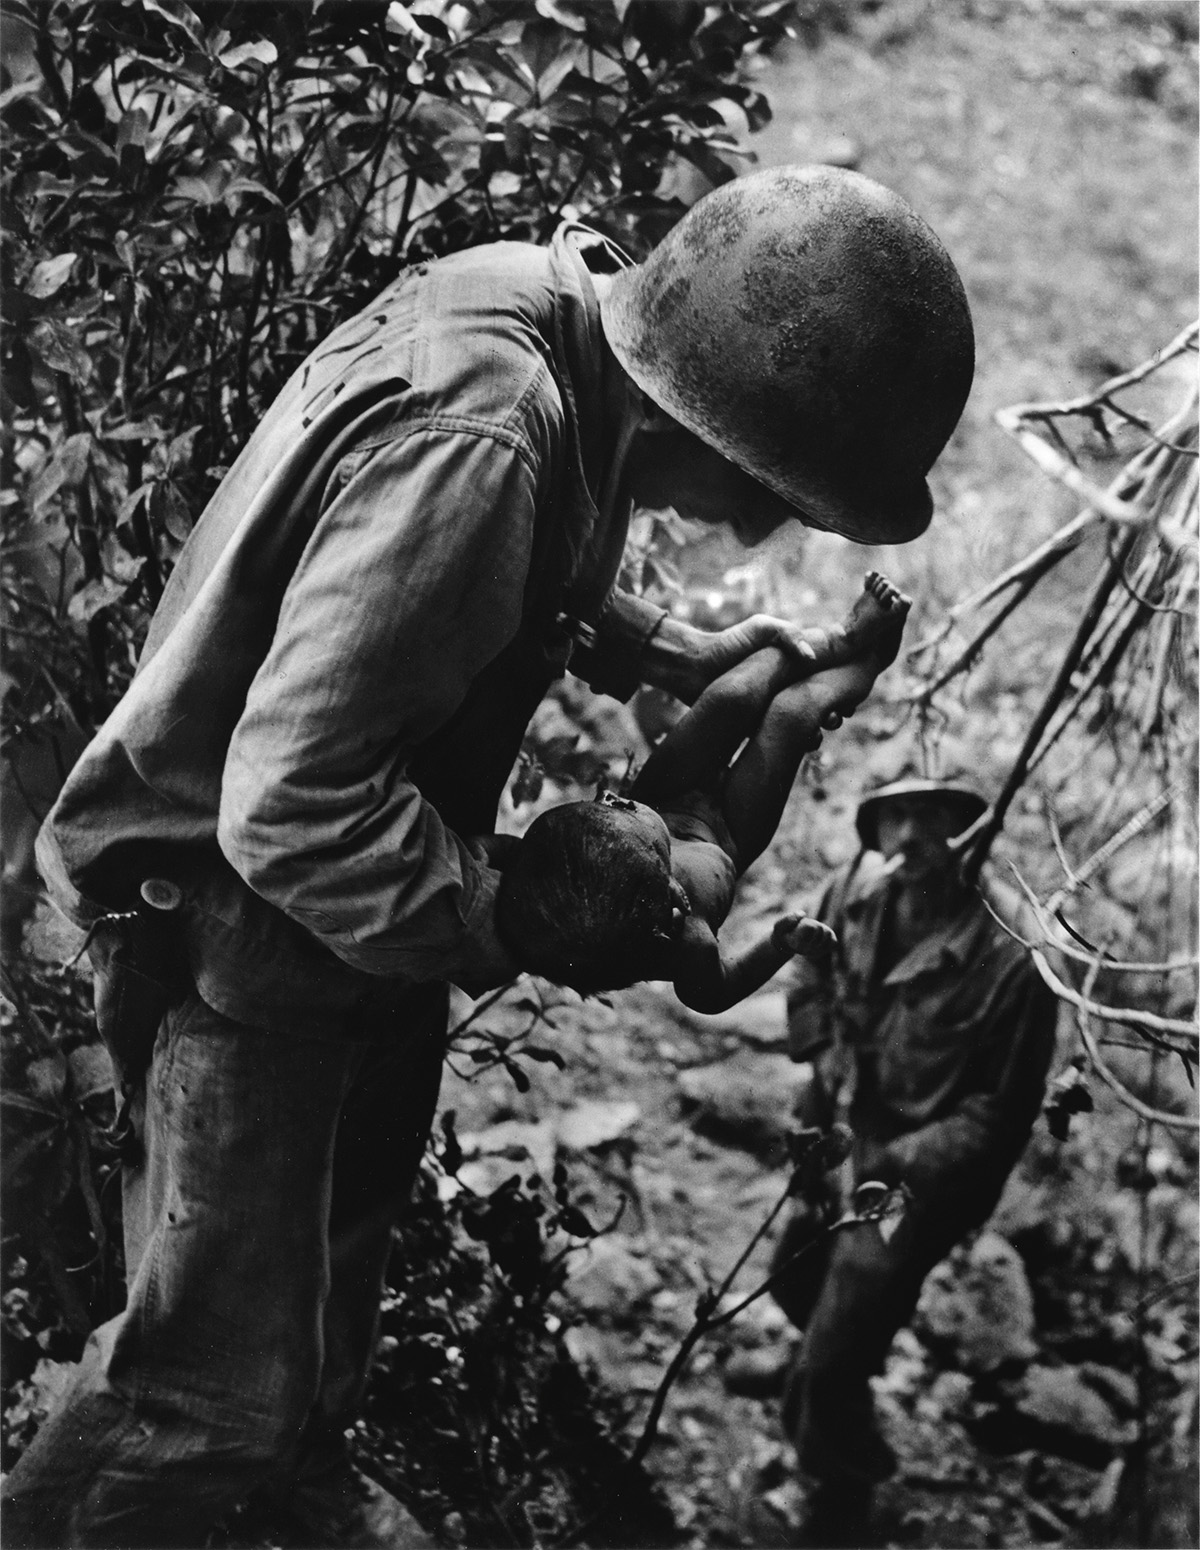 W. EUGENE SMITH (1918-1978) Saipan (soldier with an infant).